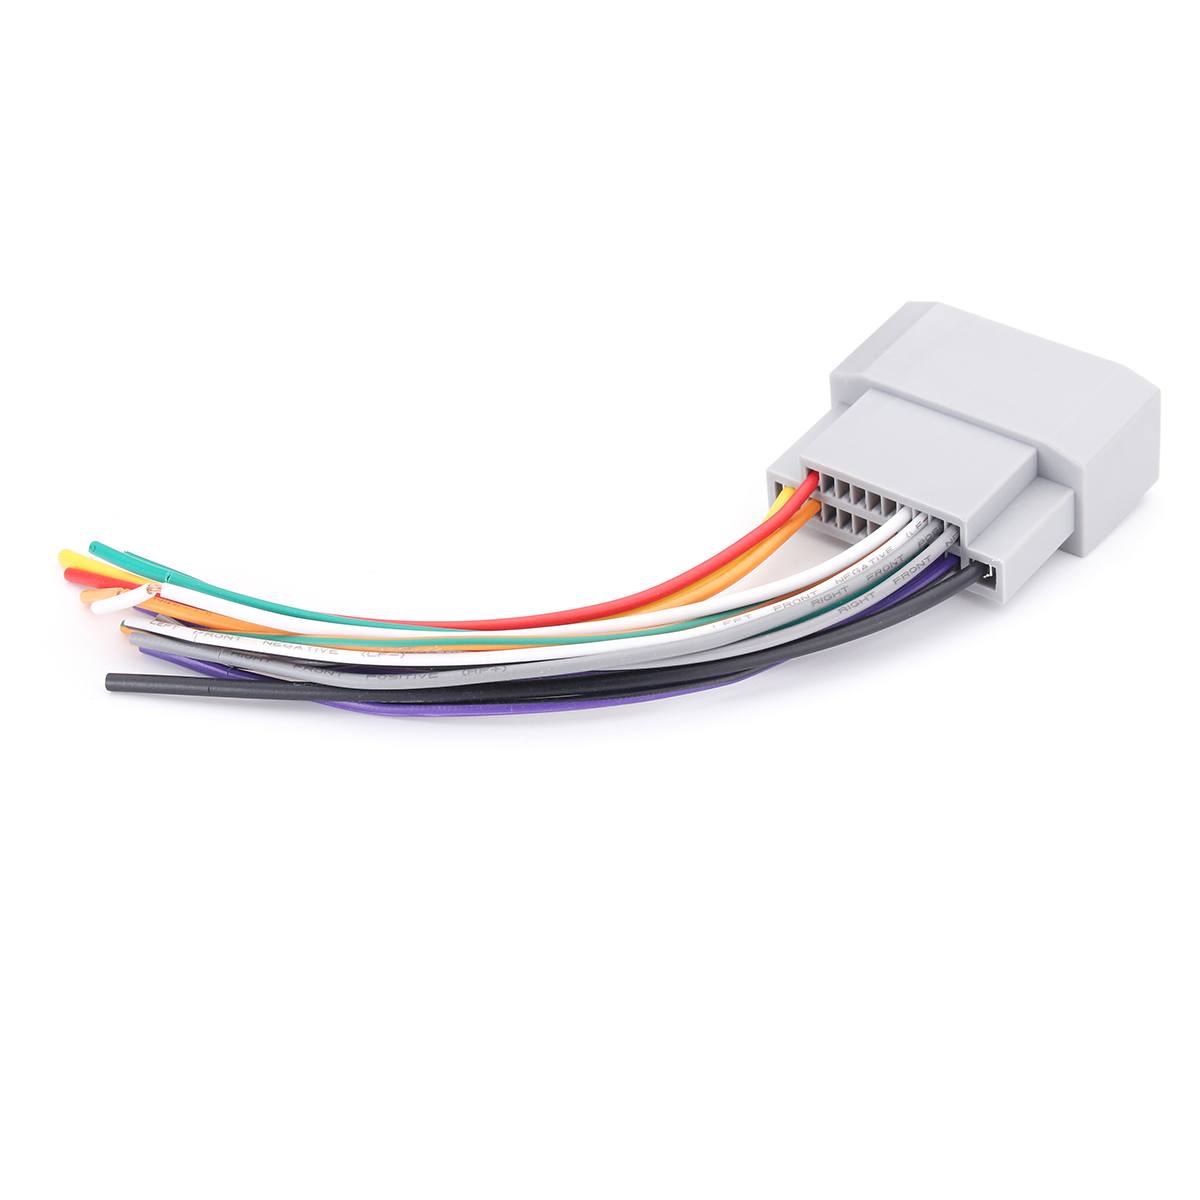 Antennas Car Stereo Wiring Harness Adapter Antenna for ... on jeep alpine, jeep transmission harness, jeep tow bar wiring harness, jeep subwoofer, jeep alternator, jeep engine wiring harness, jeep ignition lock, jeep trailer hitch wiring harness, jeep dvd player, jeep compass wiring harness,